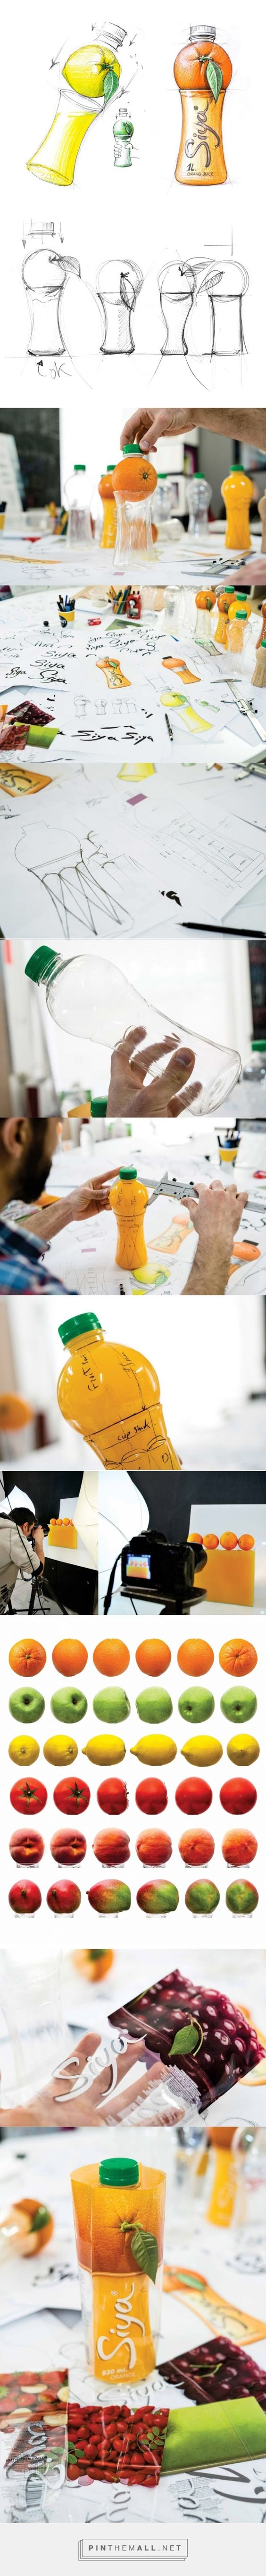 Siya Juice Packaging Development by Backbone Branding - http://www.packagingoftheworld.com/2016/04/siya.html